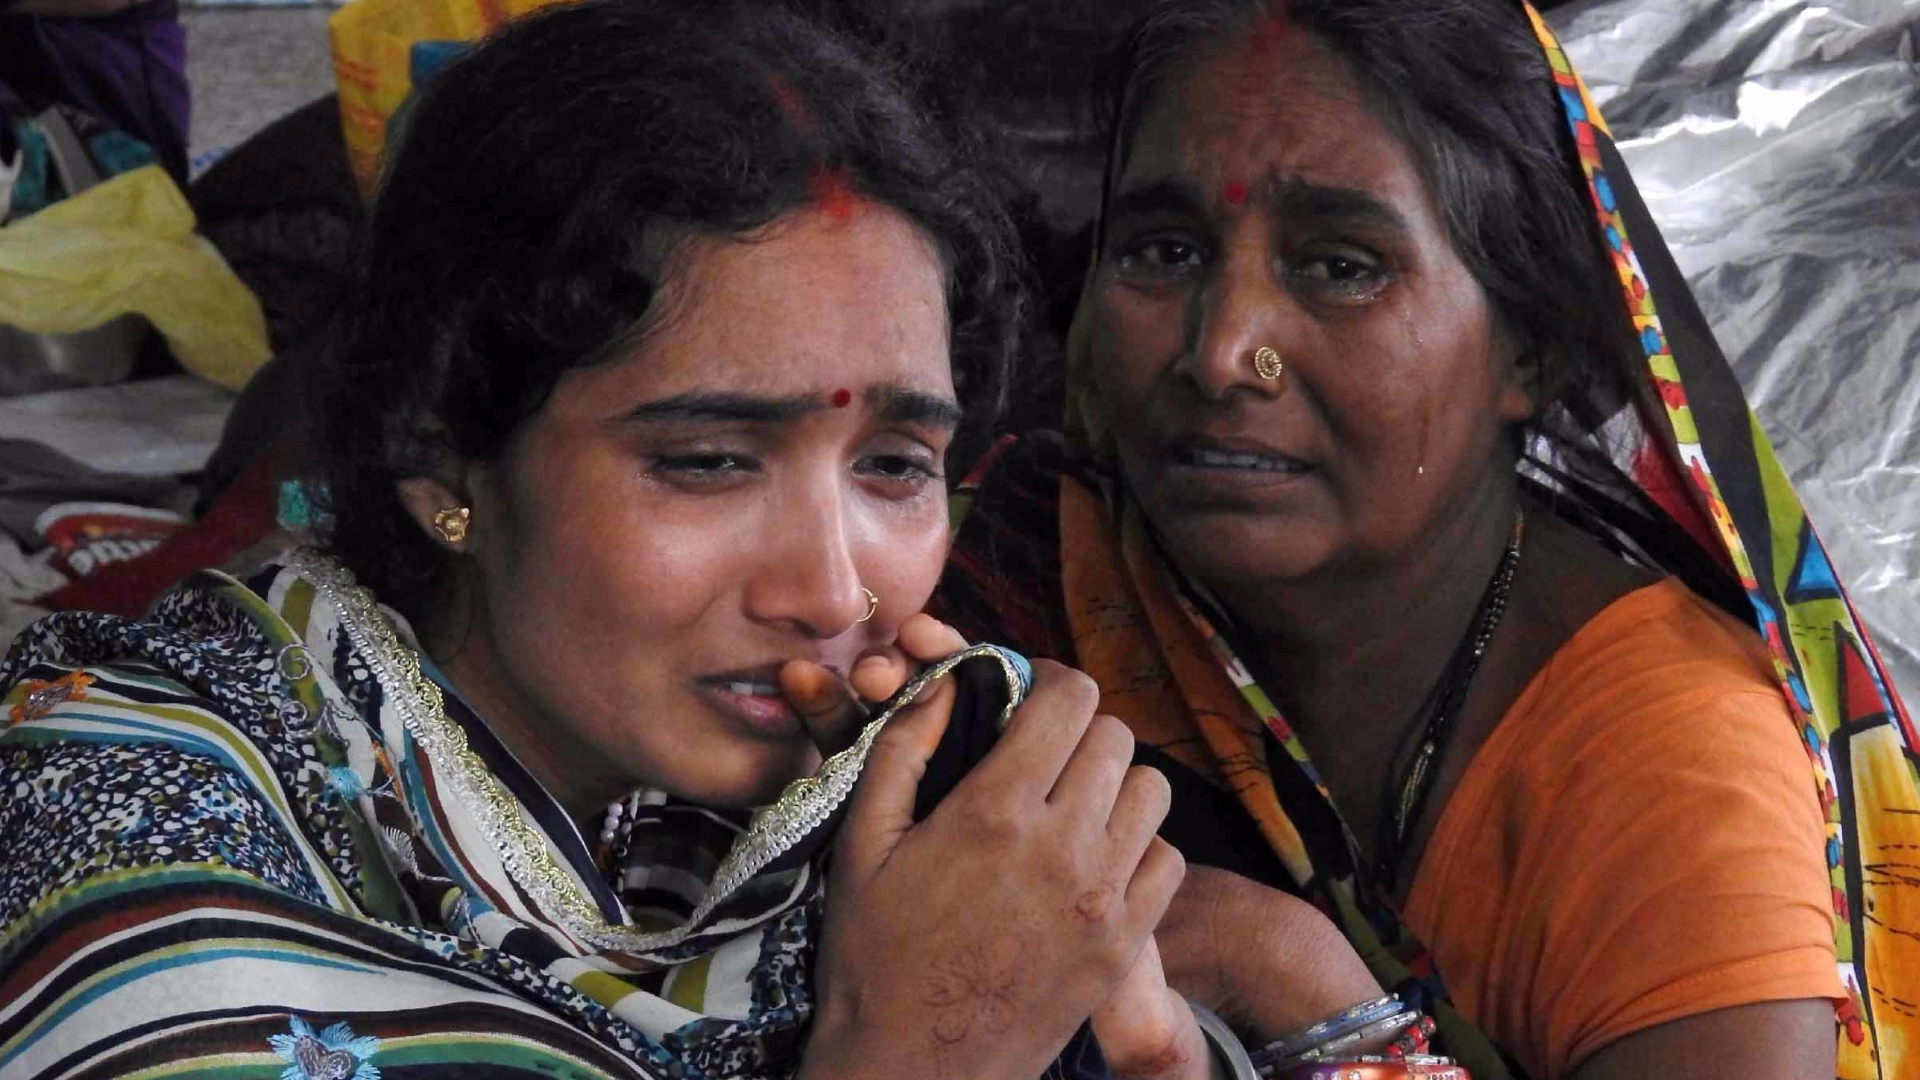 'It's a massacre': At least 30 children die in Indian hospital after oxygen is cut off